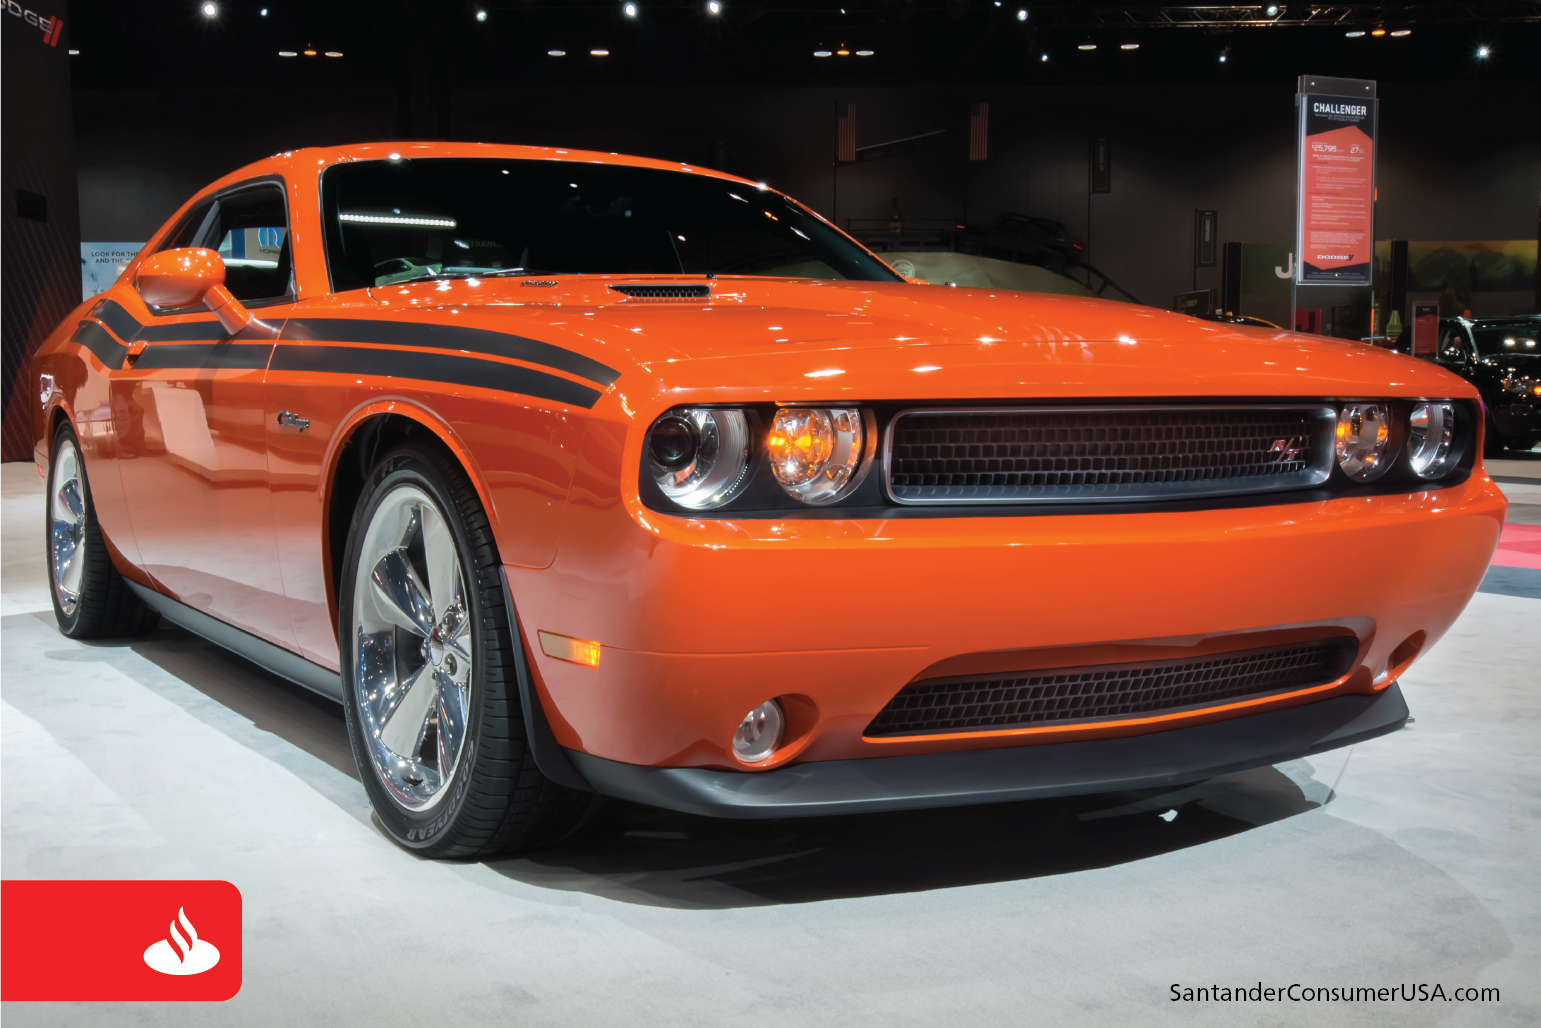 Orange cars such as this 2013 Dodge Challenger hold their value better than average.